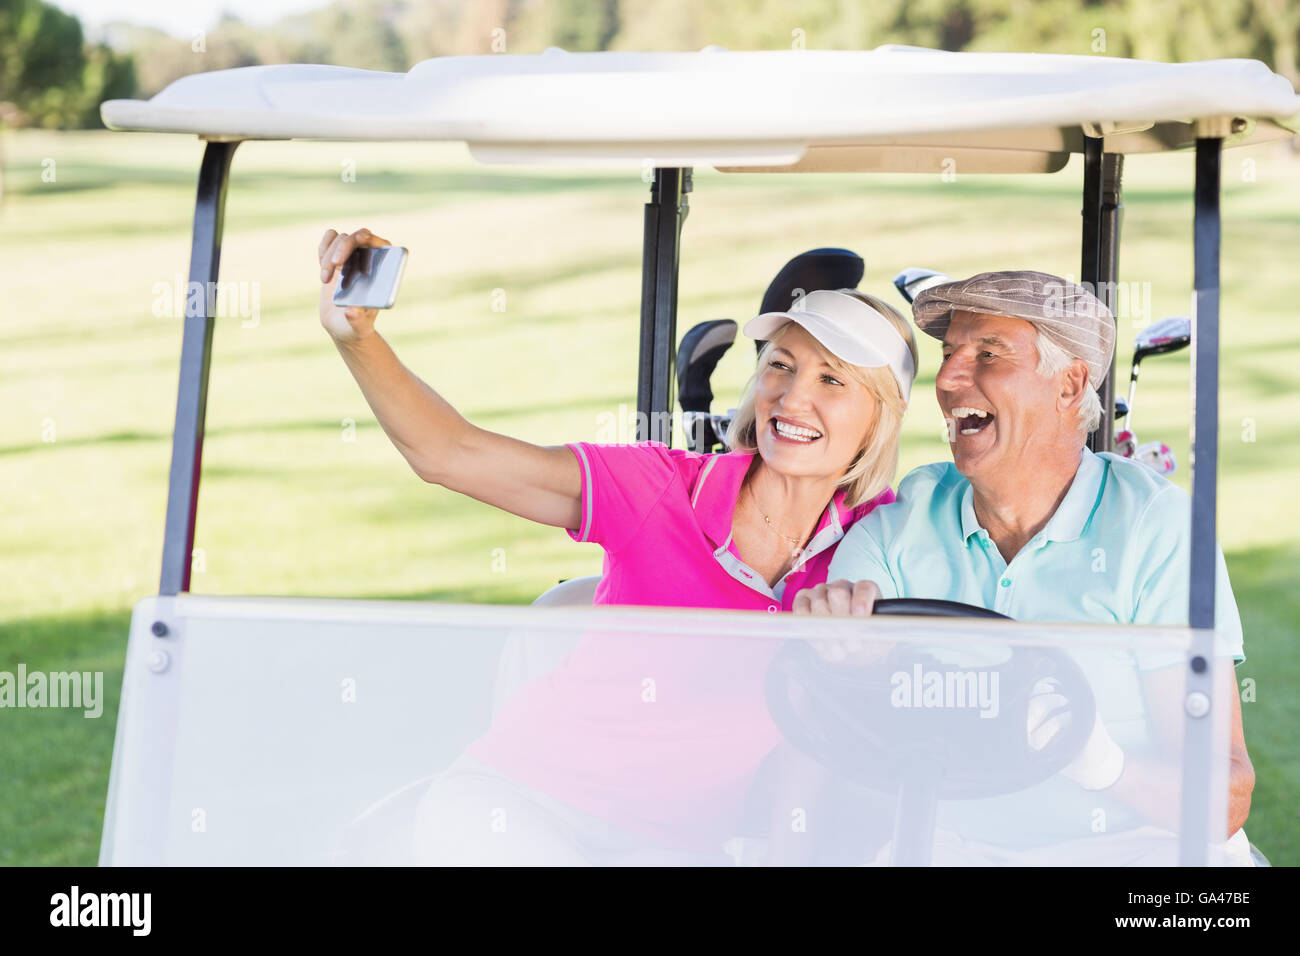 Couple taking selfie while sitting in golf buggy - Stock Image